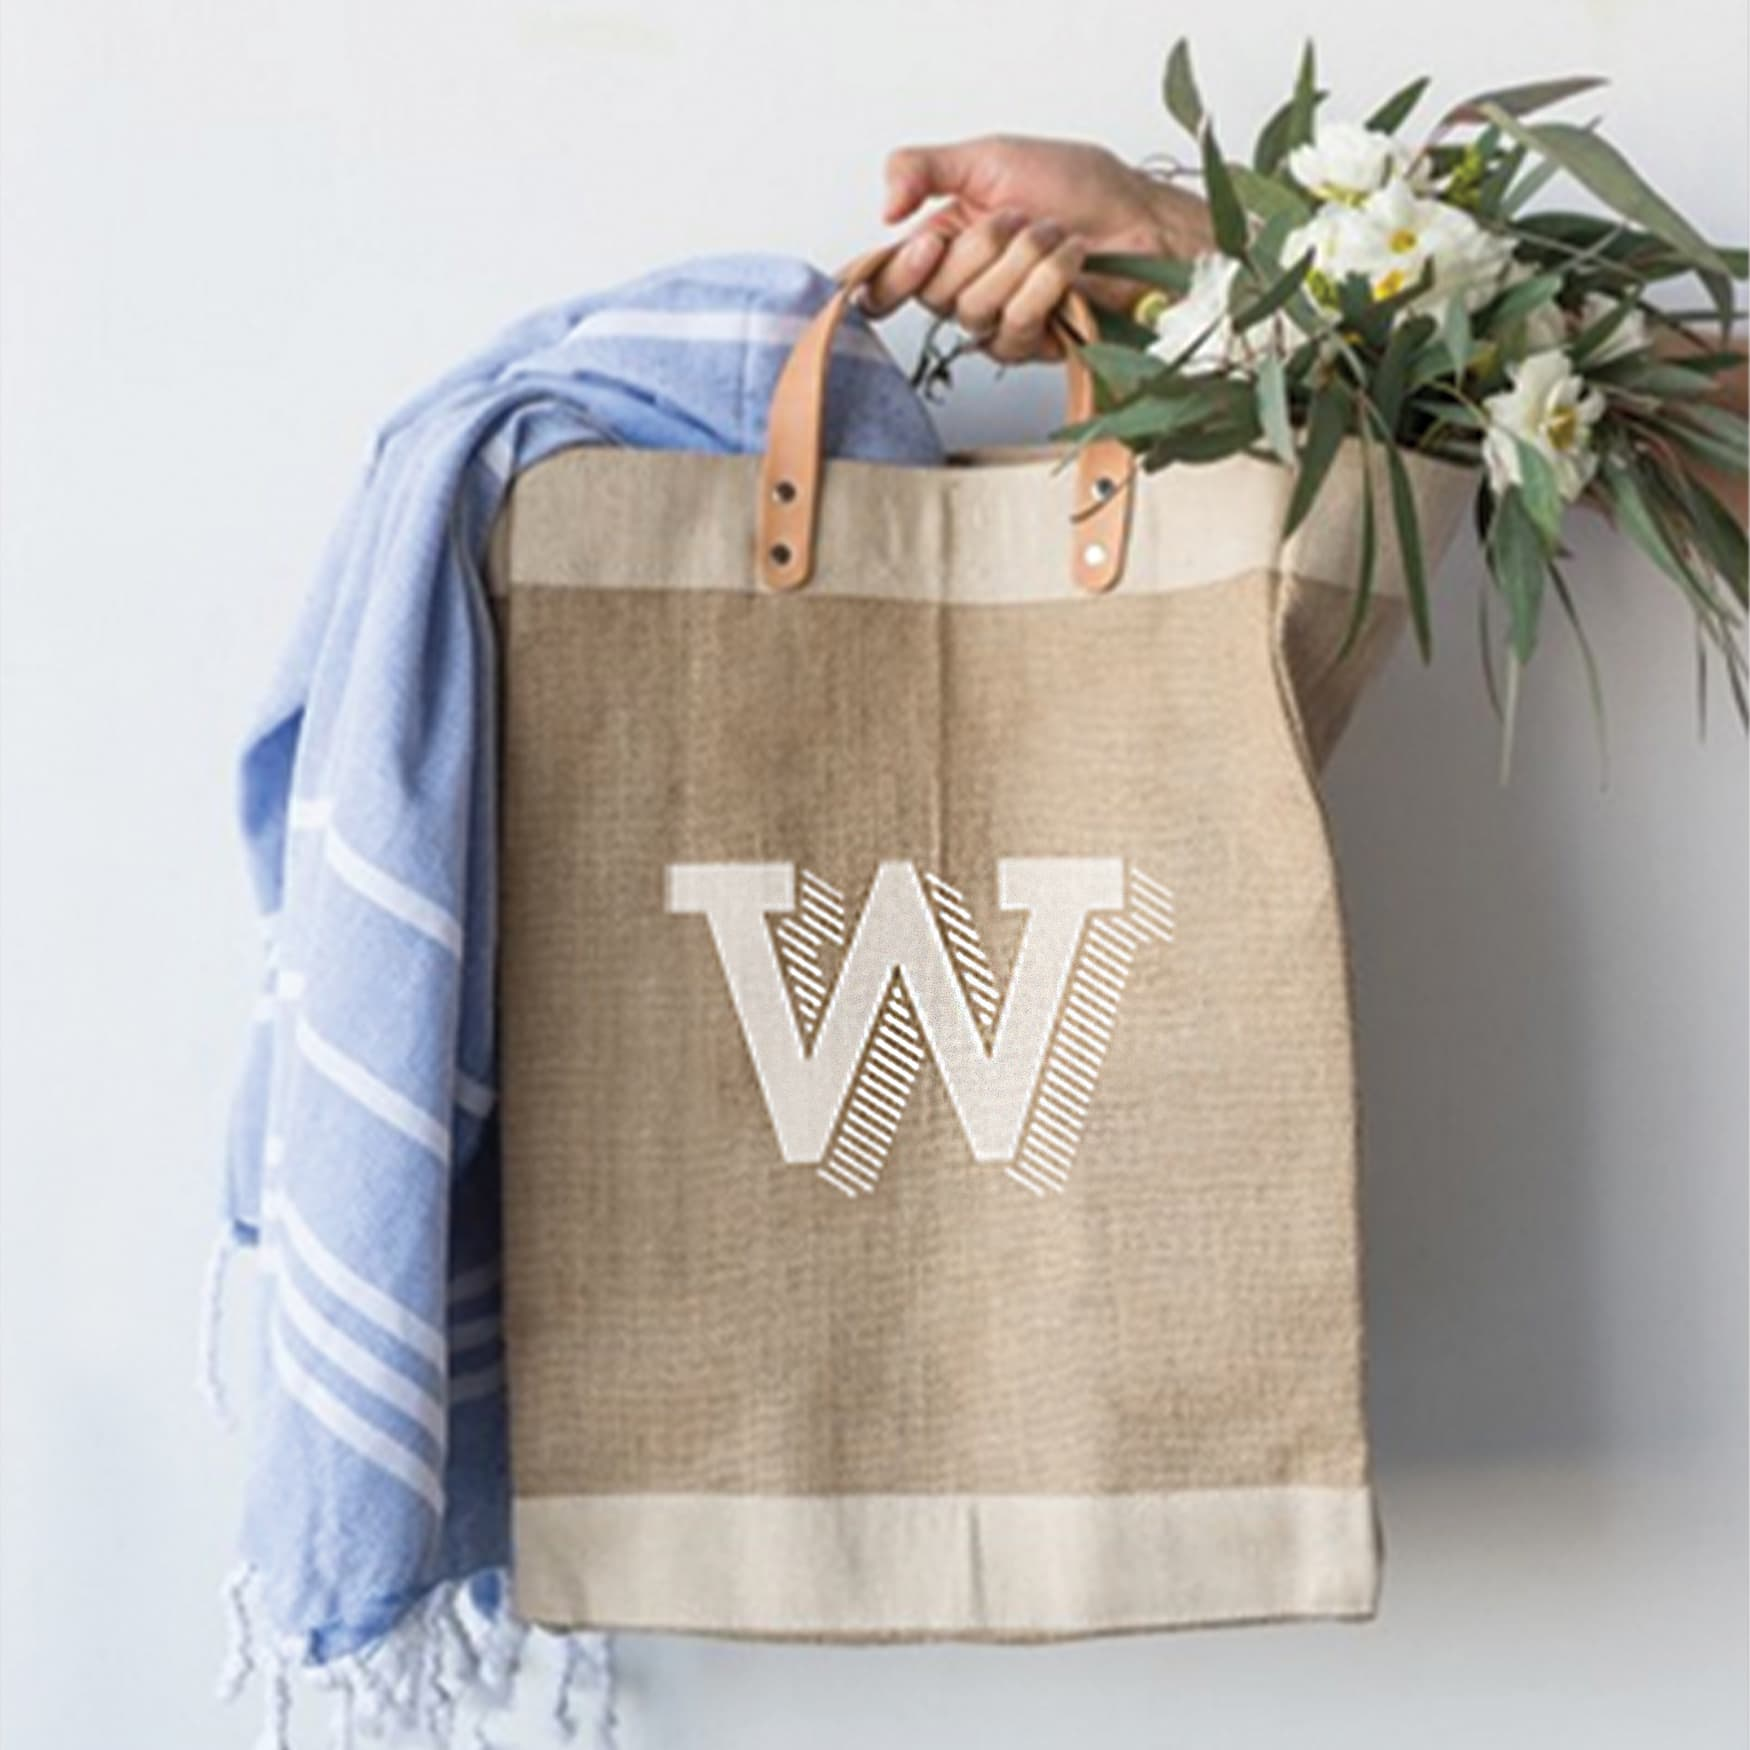 Logo design for CenterCal Properties' The Waterfront on burlap bag with flowers.